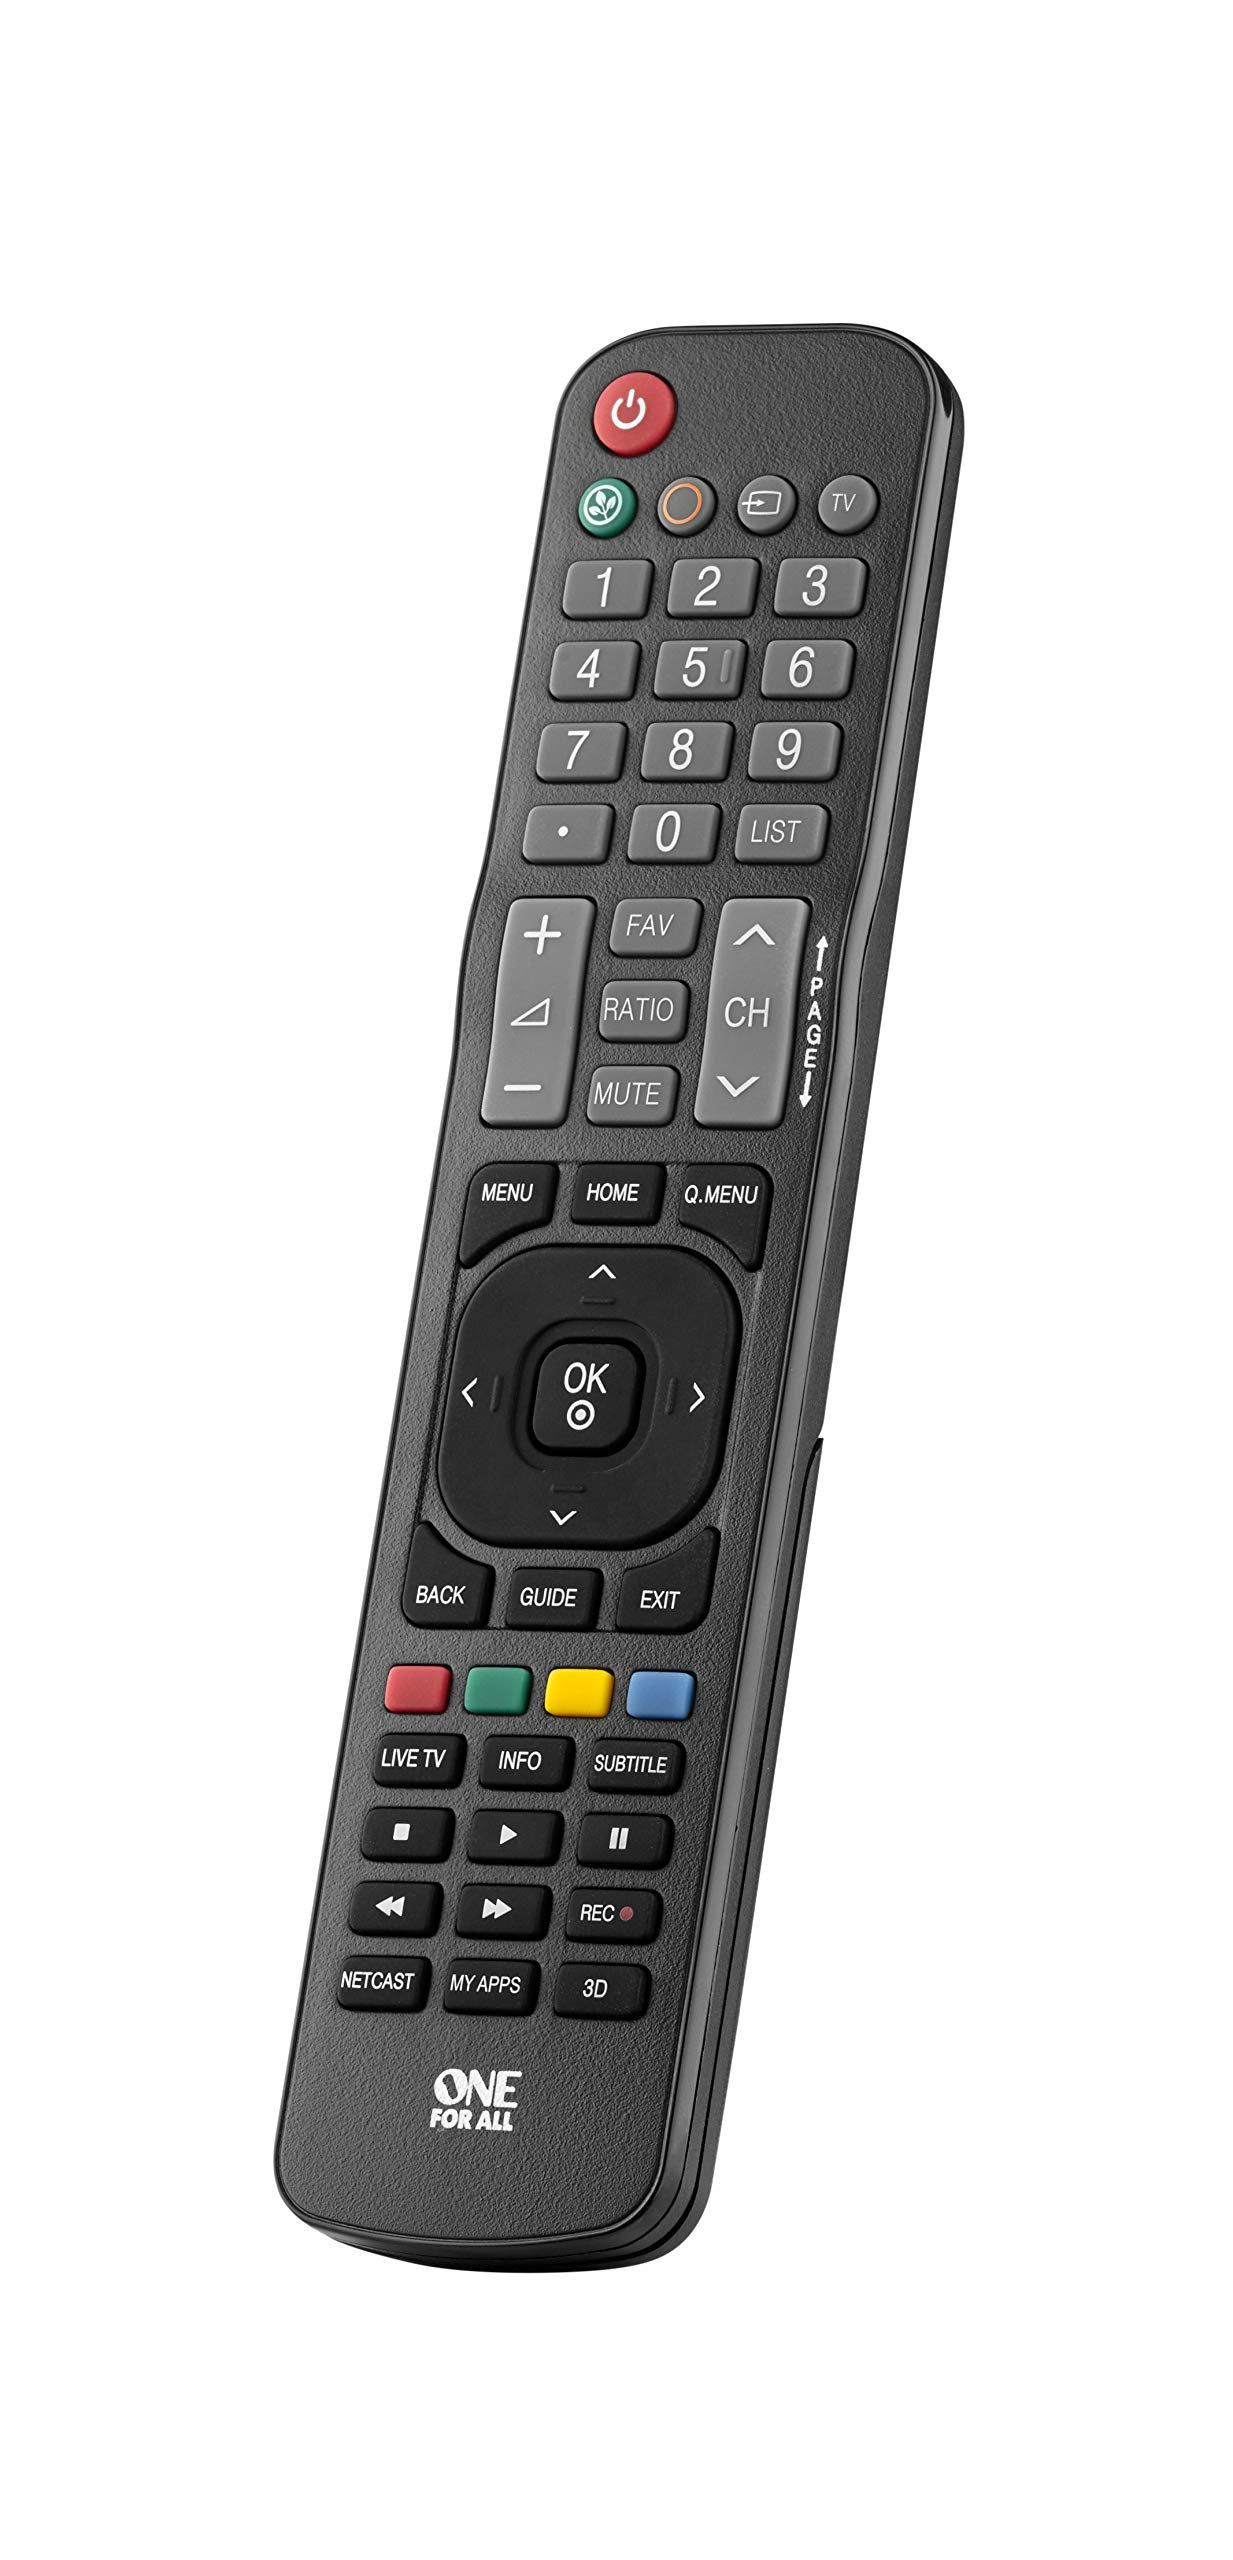 One For All LG TV Replacement Remote - Works with All Lg Televisions (LED, LCD, Plasma) - Ideal TV Replacement Remote Control with Same Functions as The Original Lg Remote - Black - Urc1811